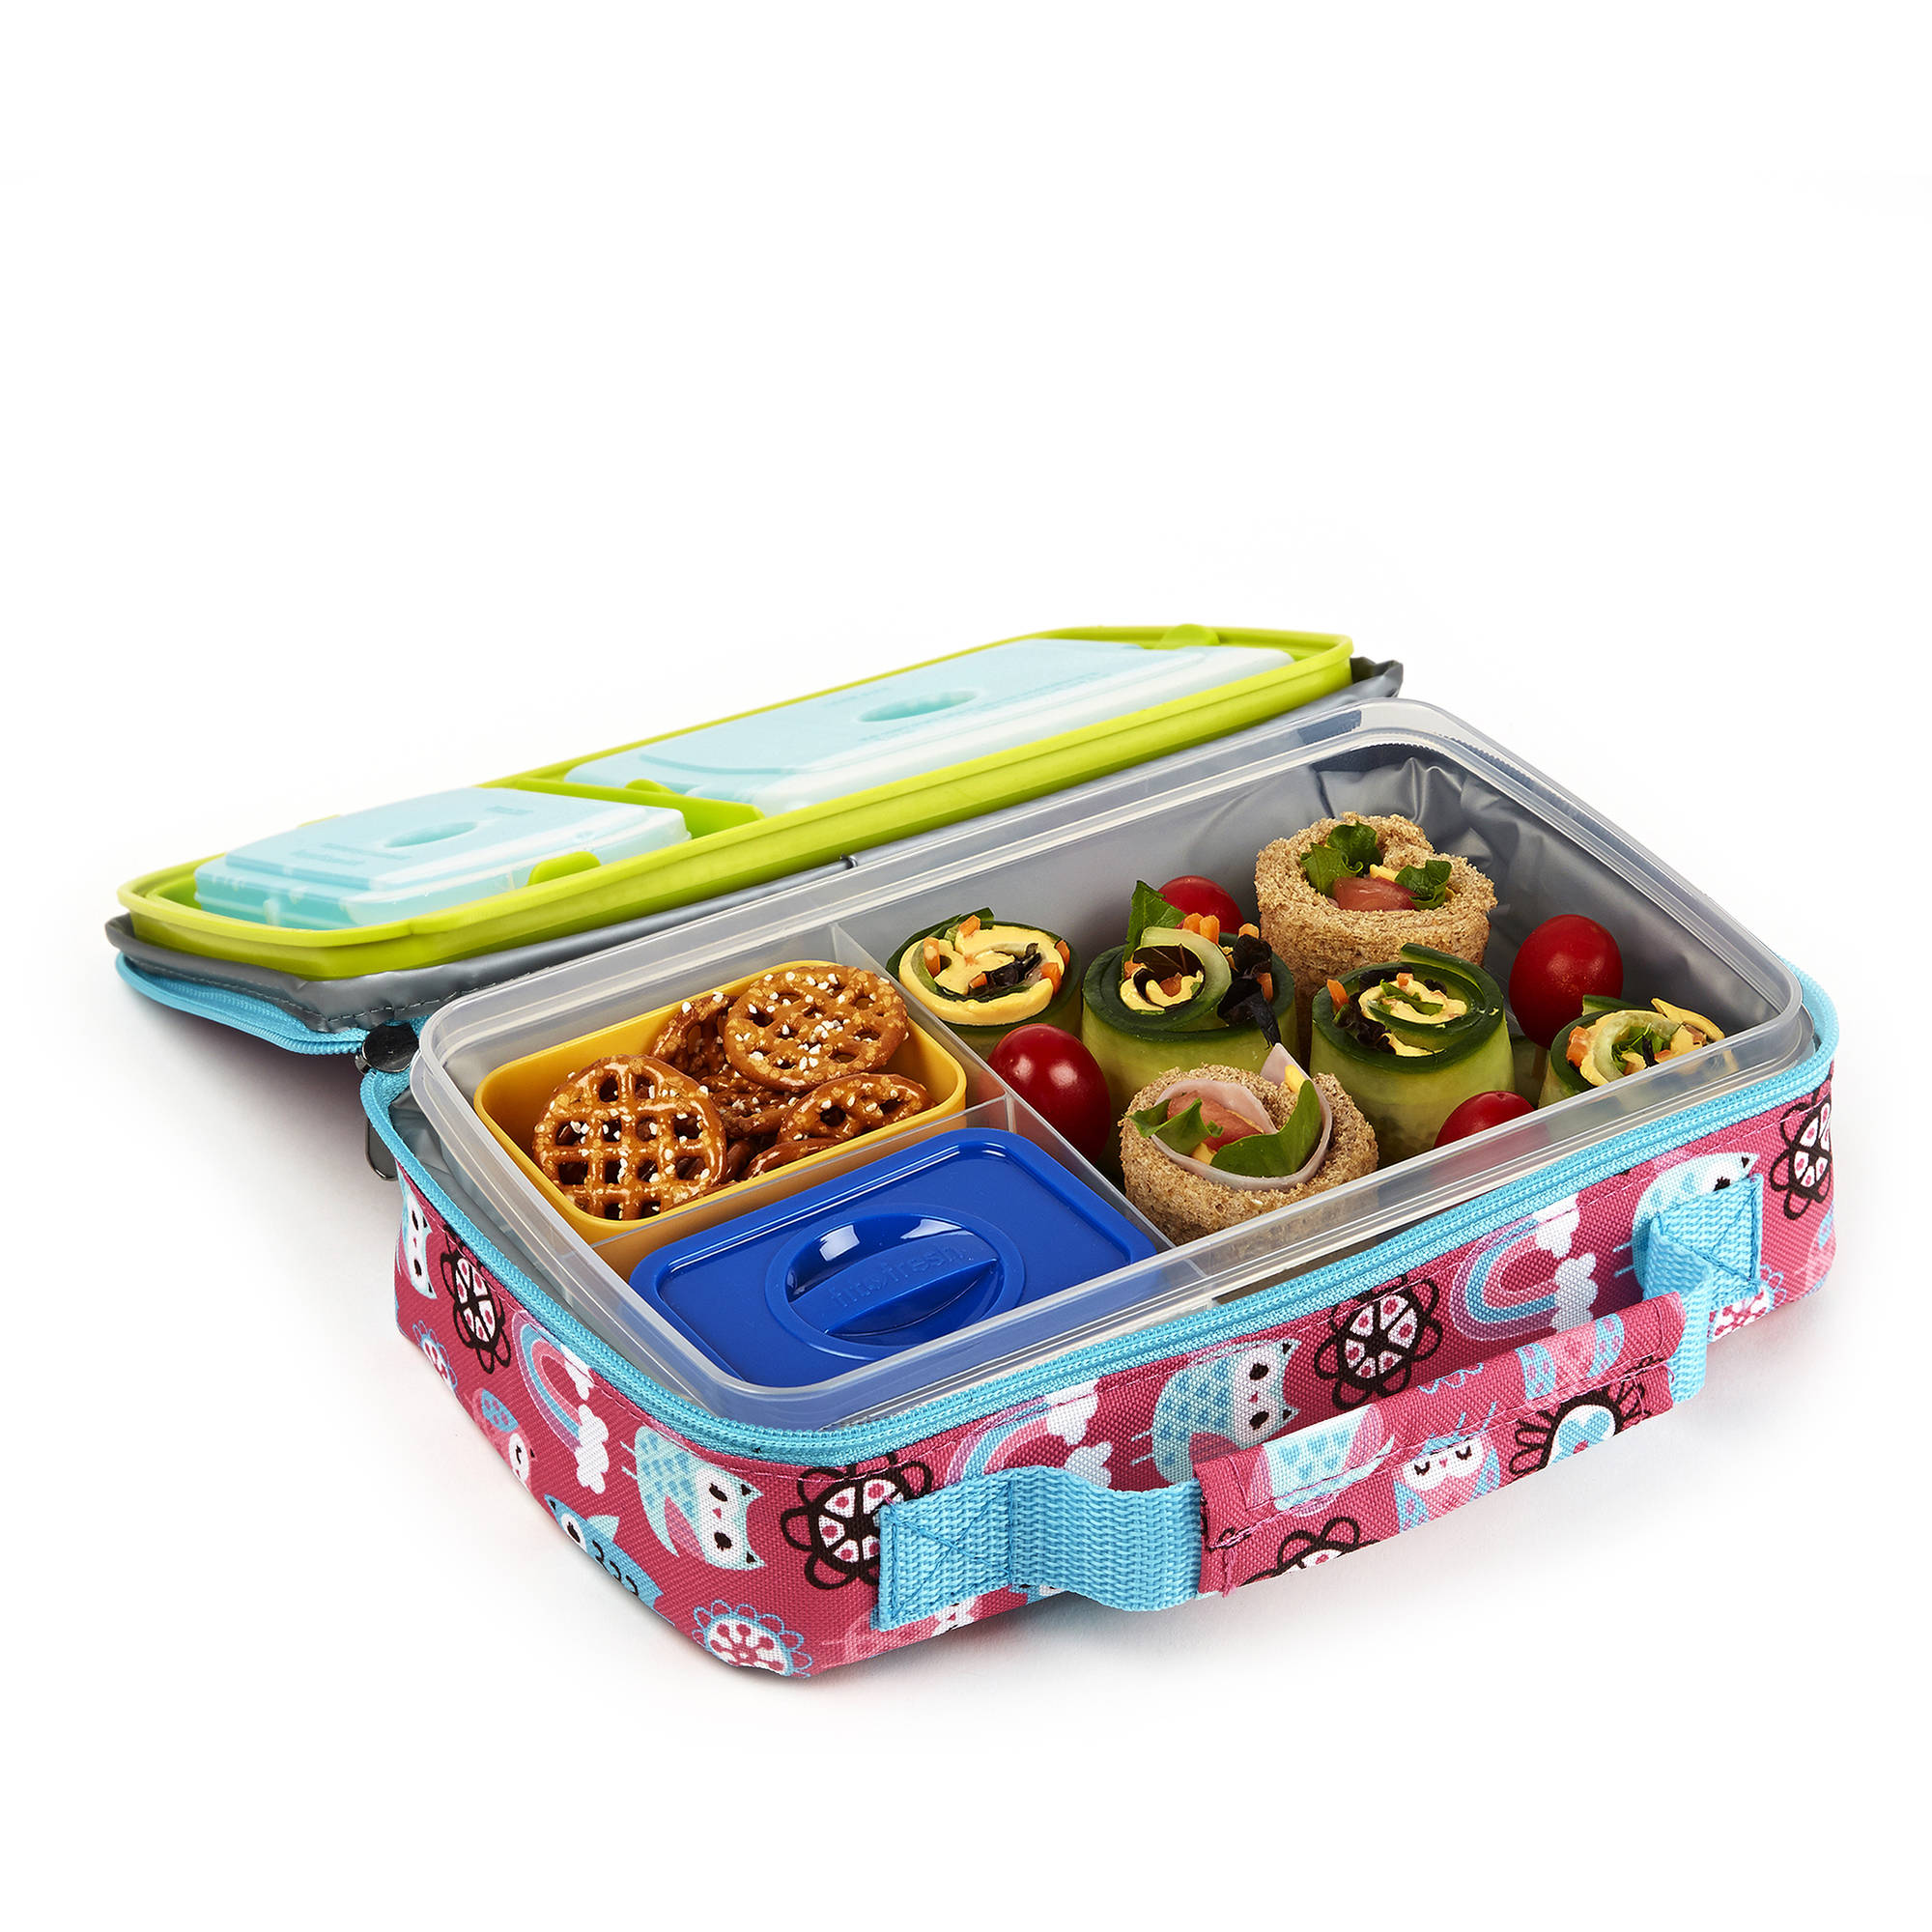 LOTG Lunch Kit, Bento Girl